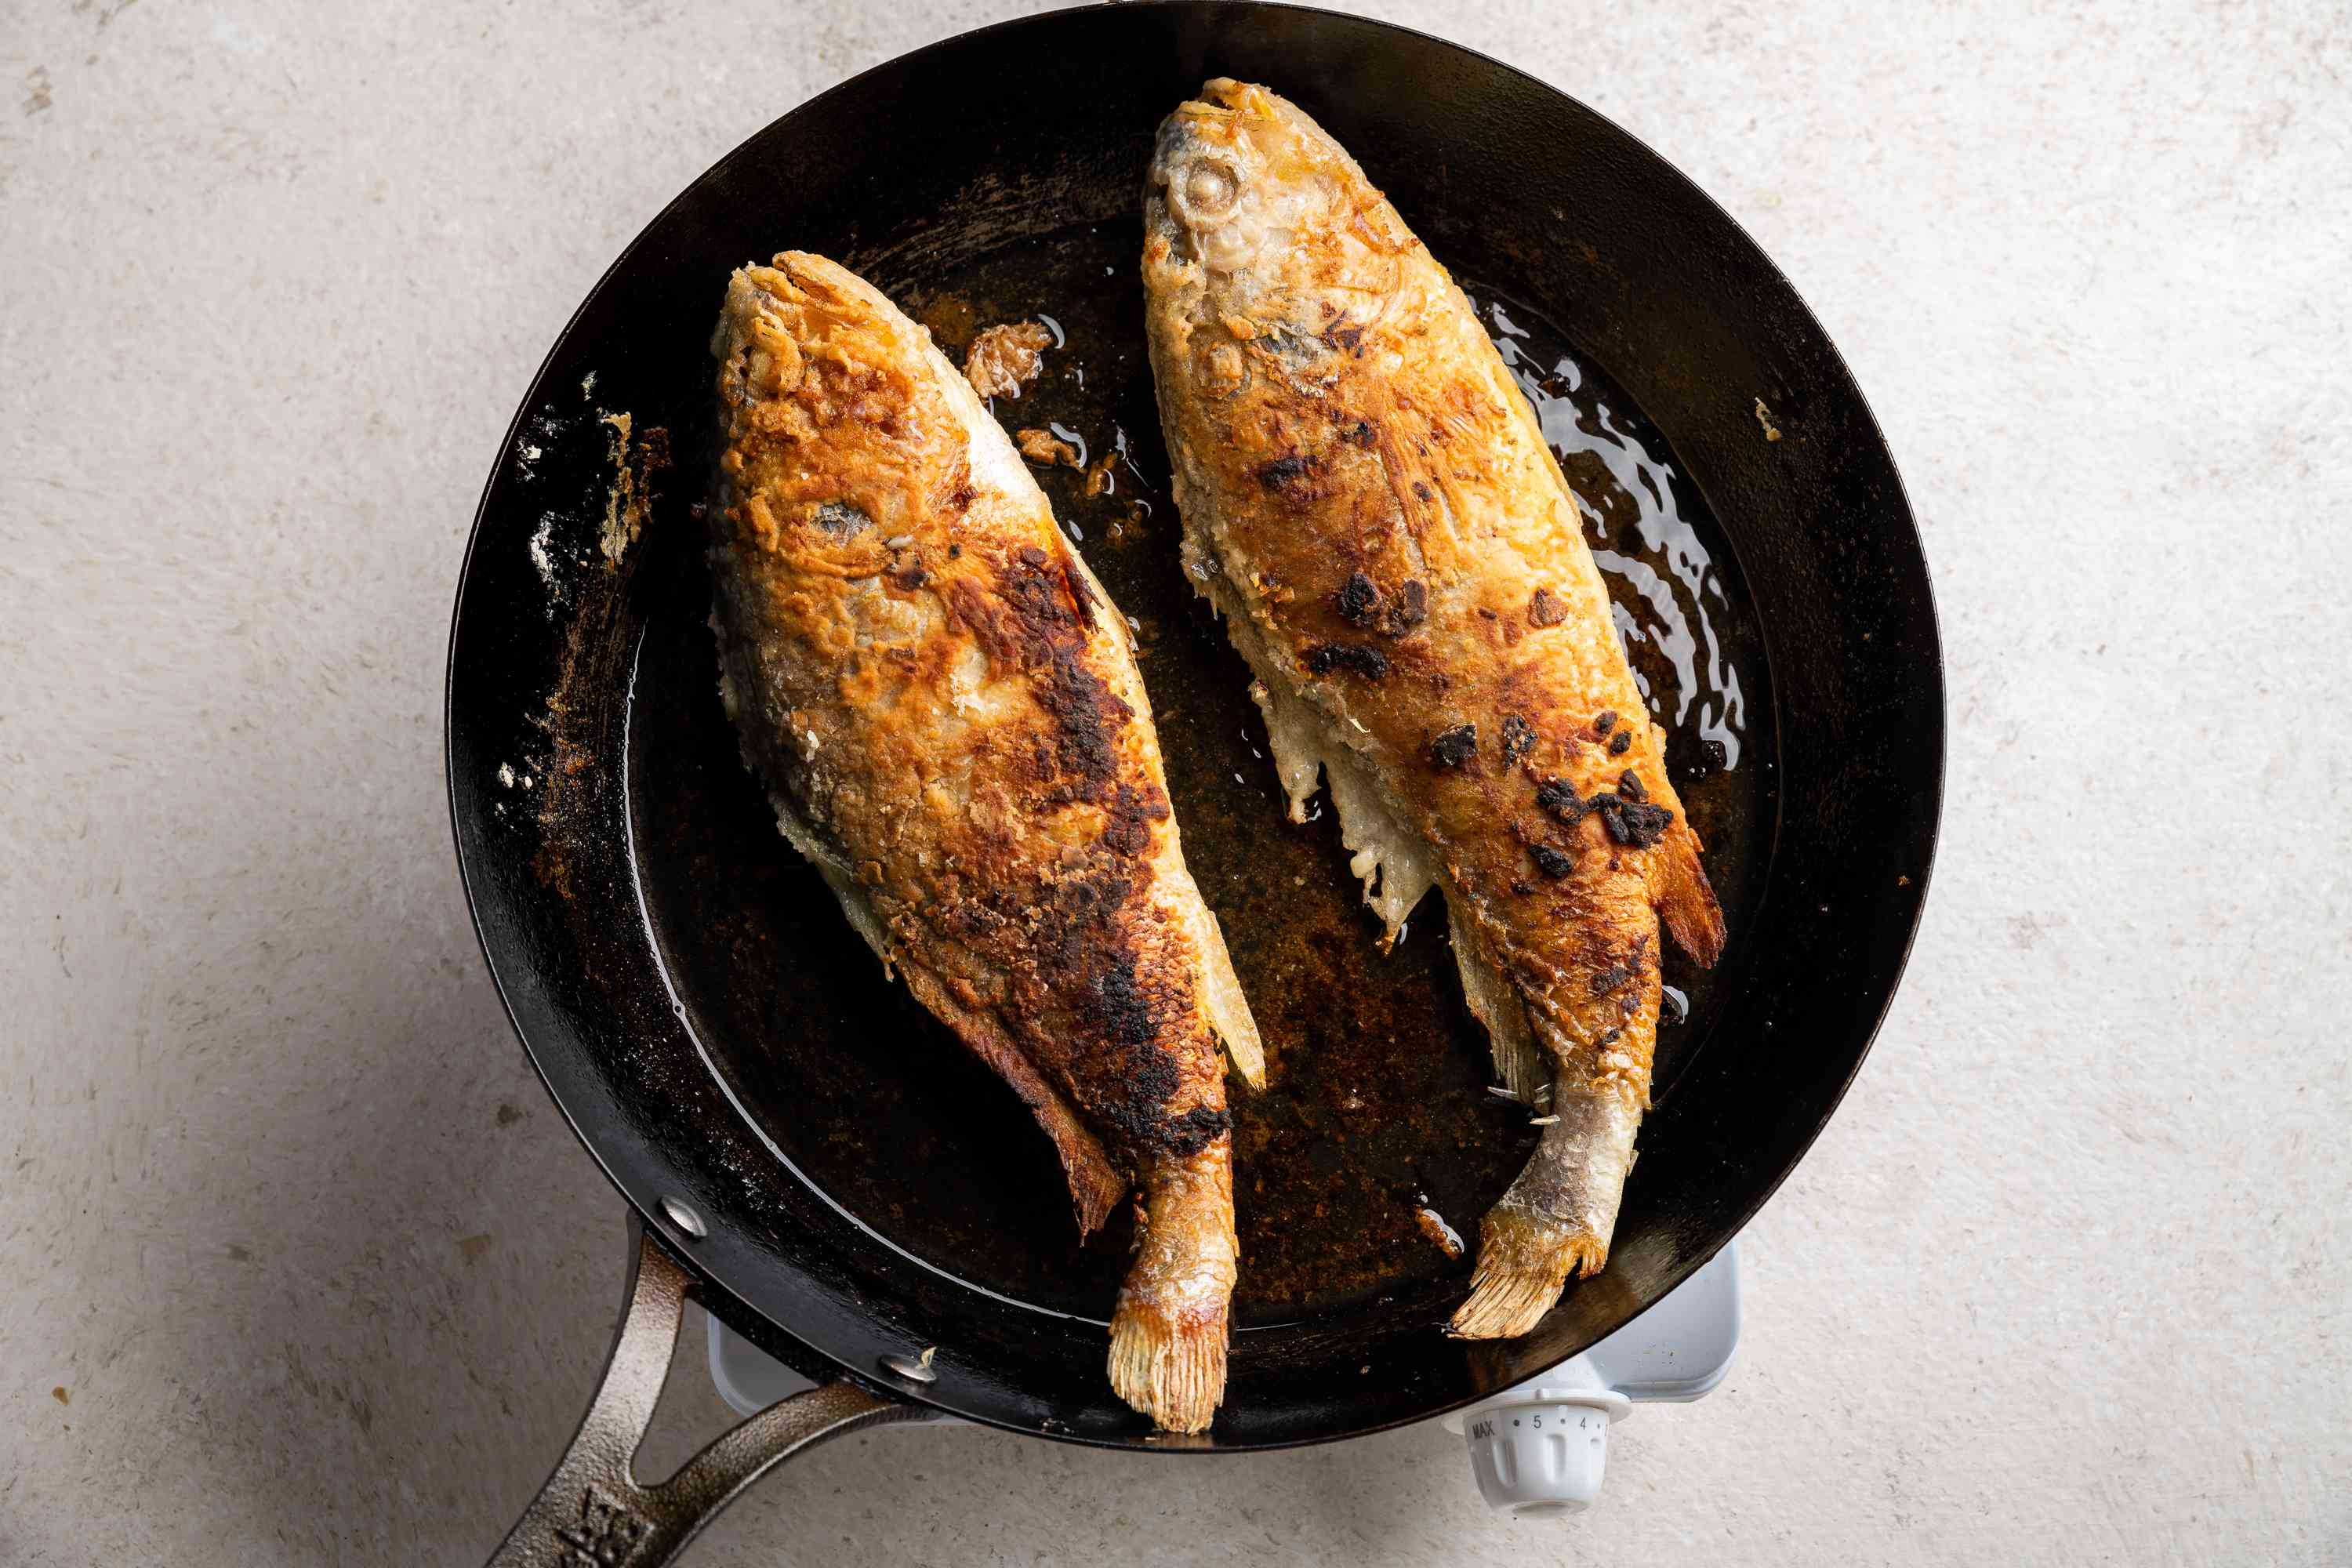 fried whole fish in a pan